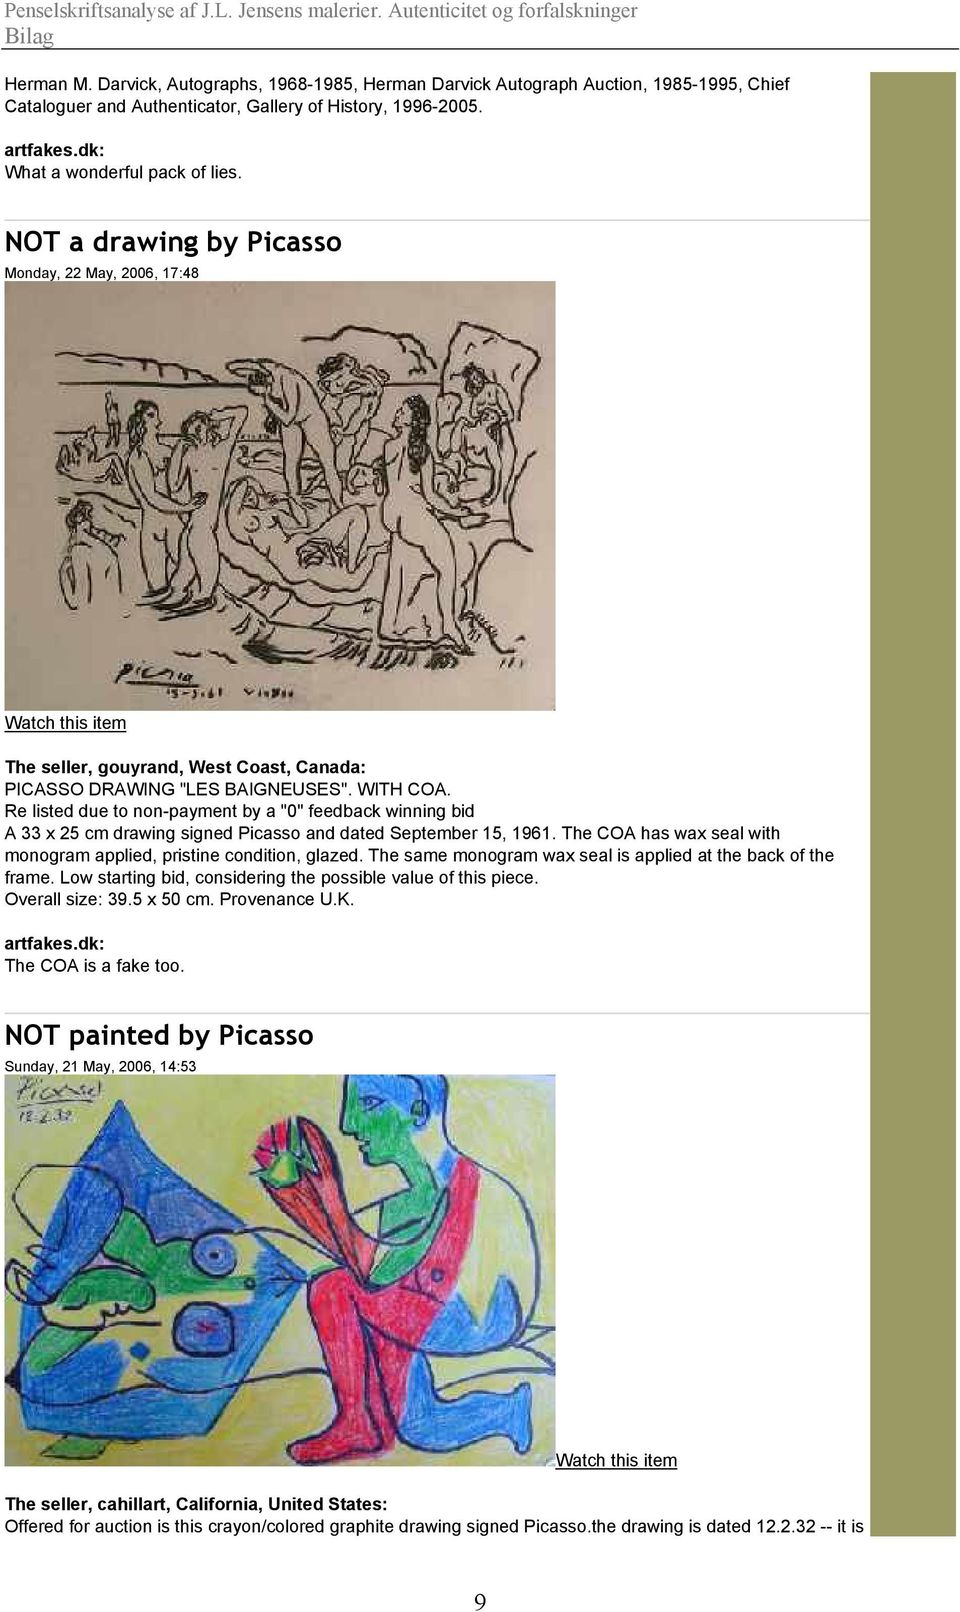 "Re listed due to non-payment by a ""0"" feedback winning bid A 33 x 25 cm drawing signed Picasso and dated September 15, 1961. The COA has wax seal with monogram applied, pristine condition, glazed."